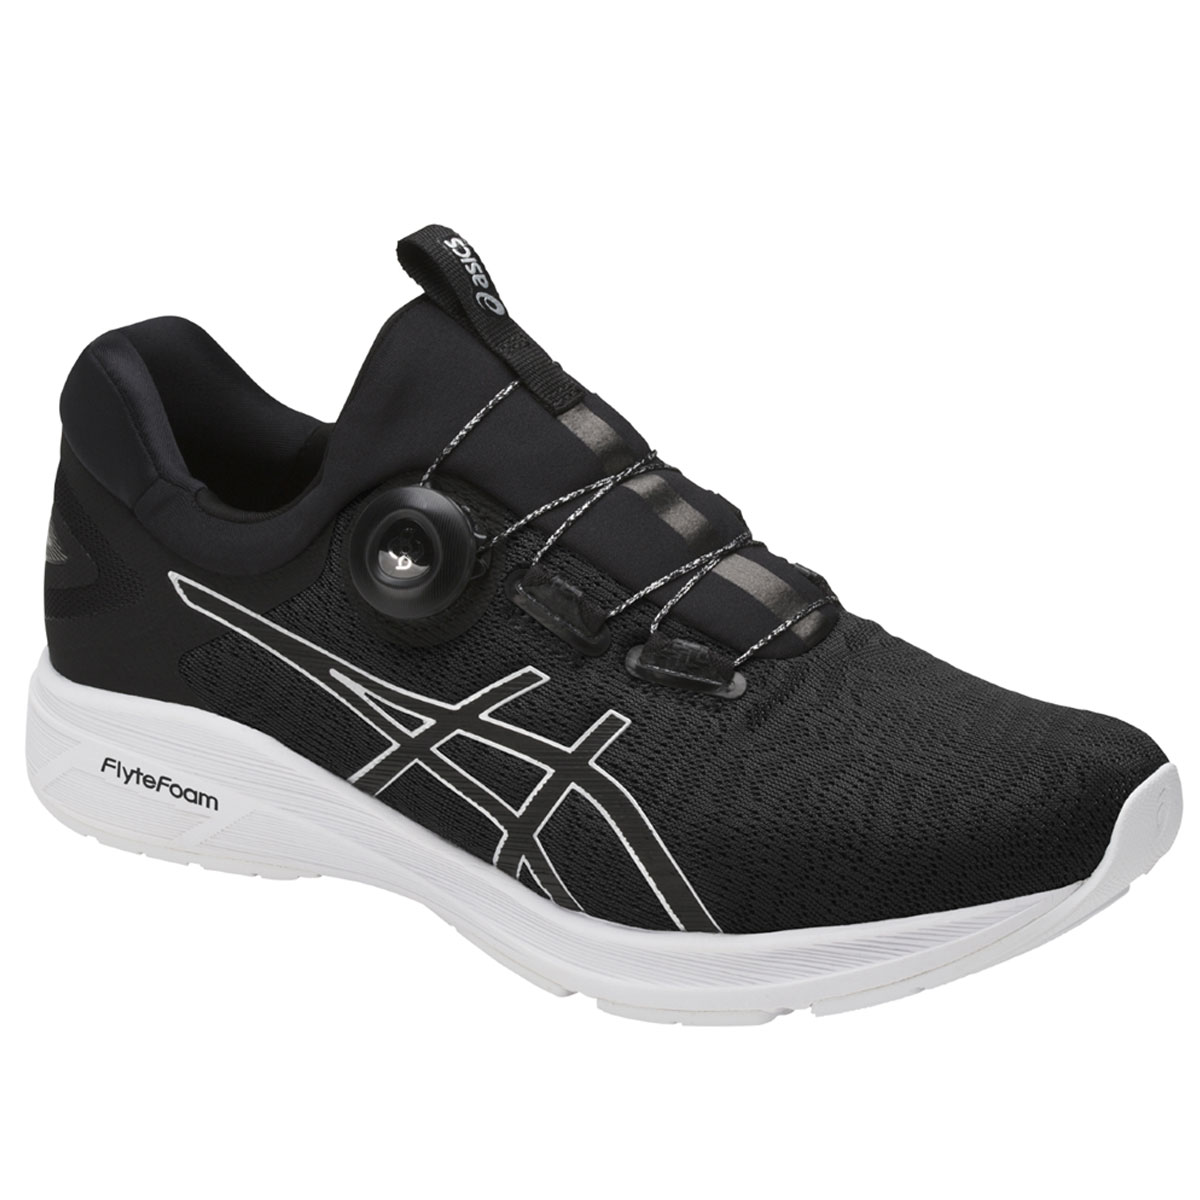 5152c45691b02e Asics Dynamis Men s Running Shoes - ALTON SPORTS